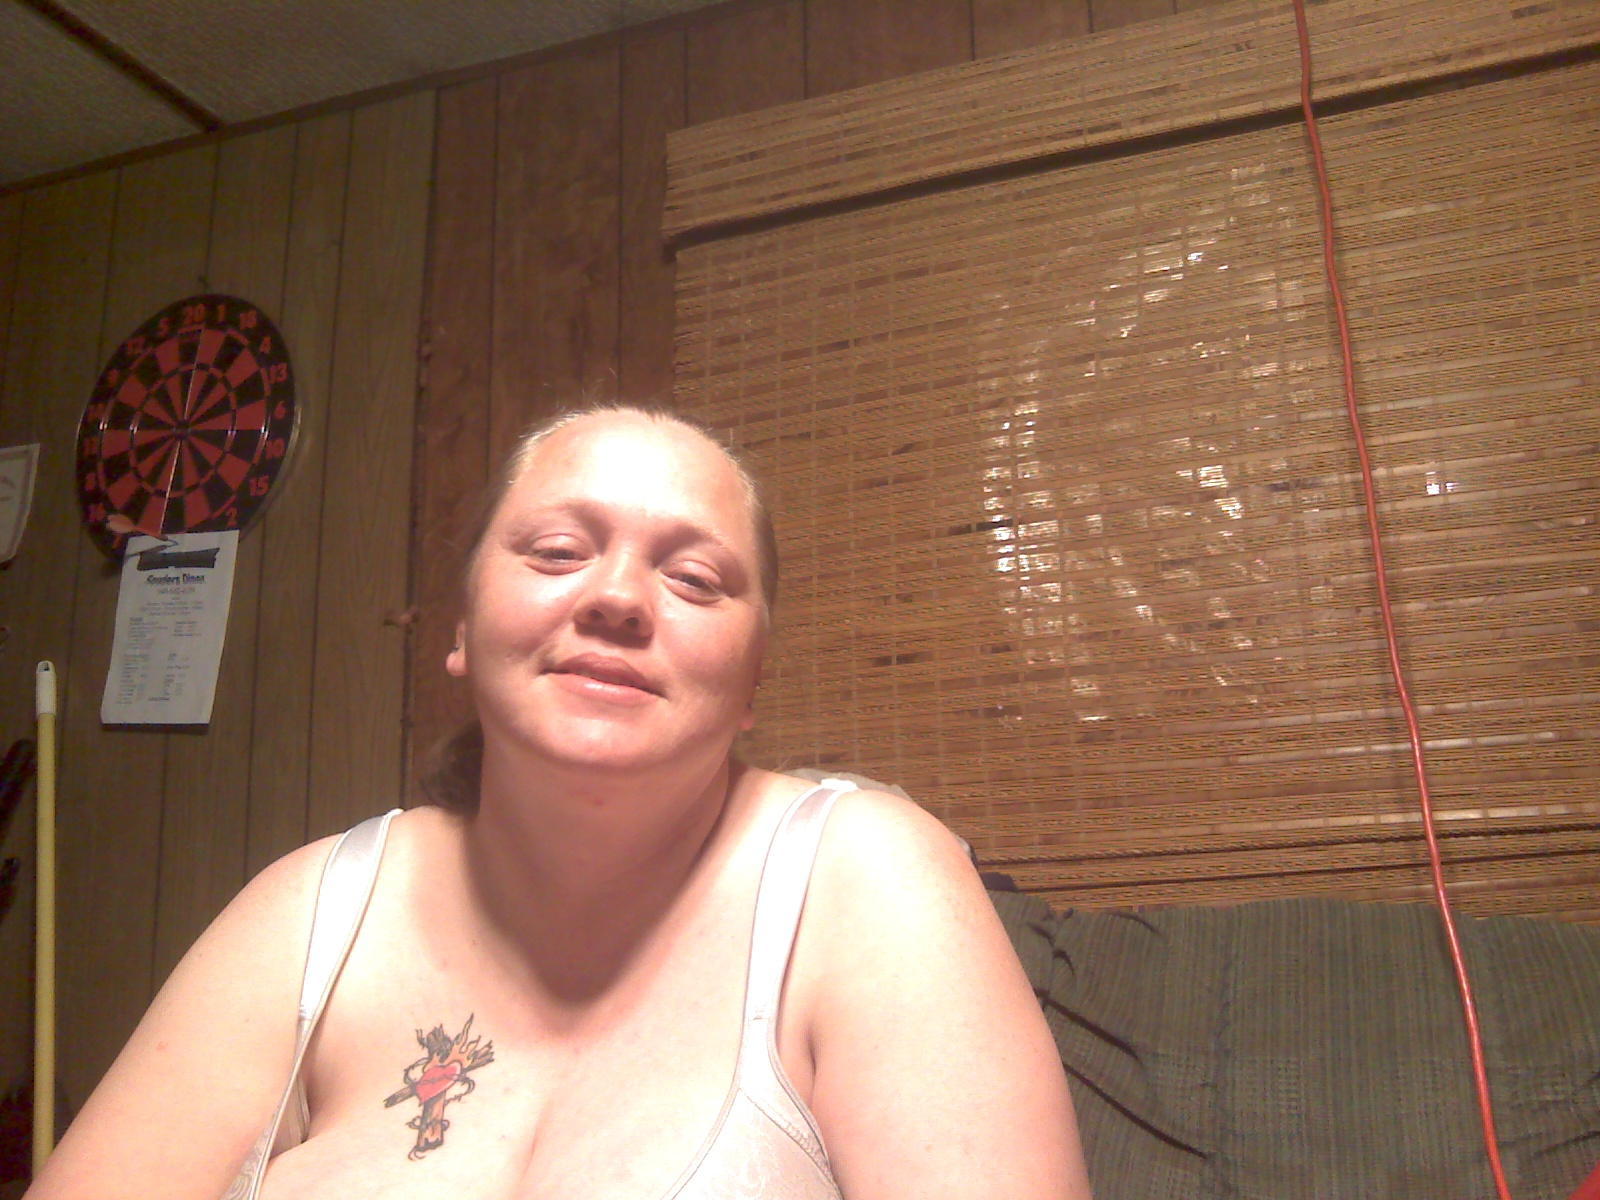 Women seeking men in hazlehurst ga